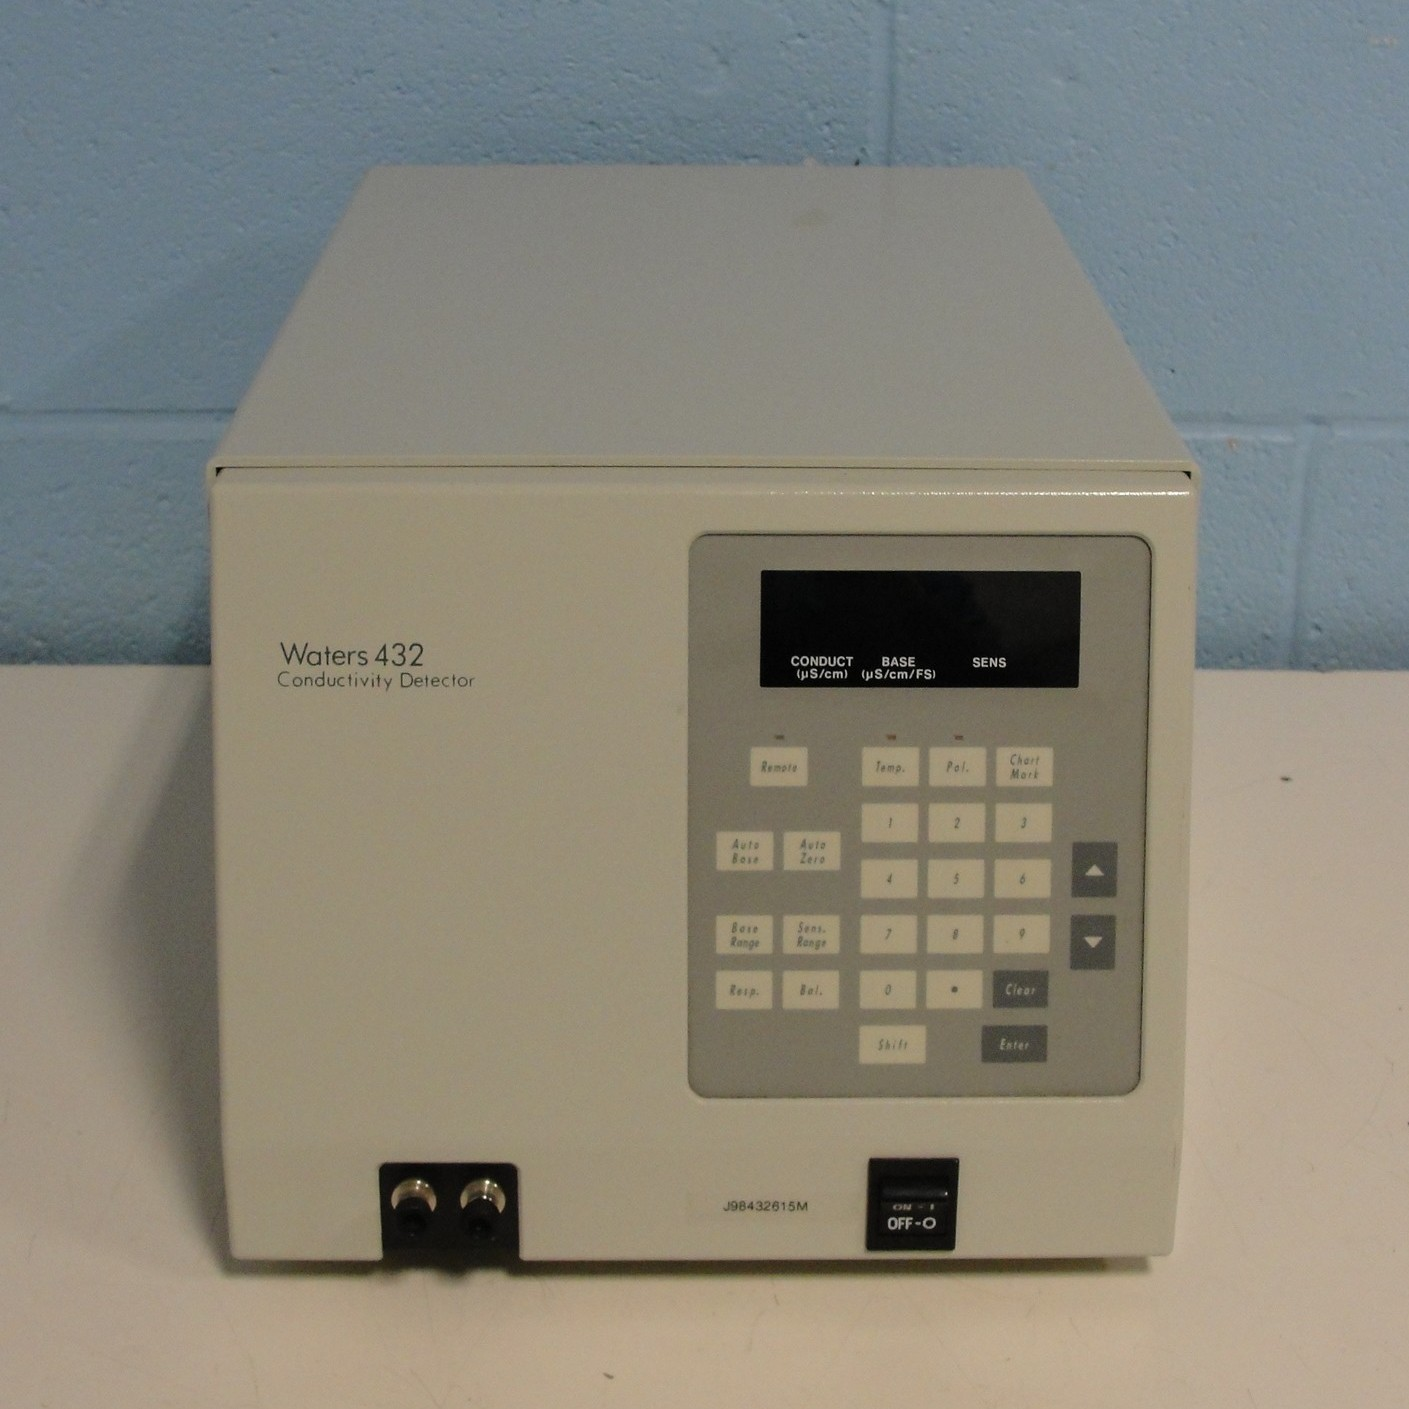 Waters 432 Conductivity Detector Image